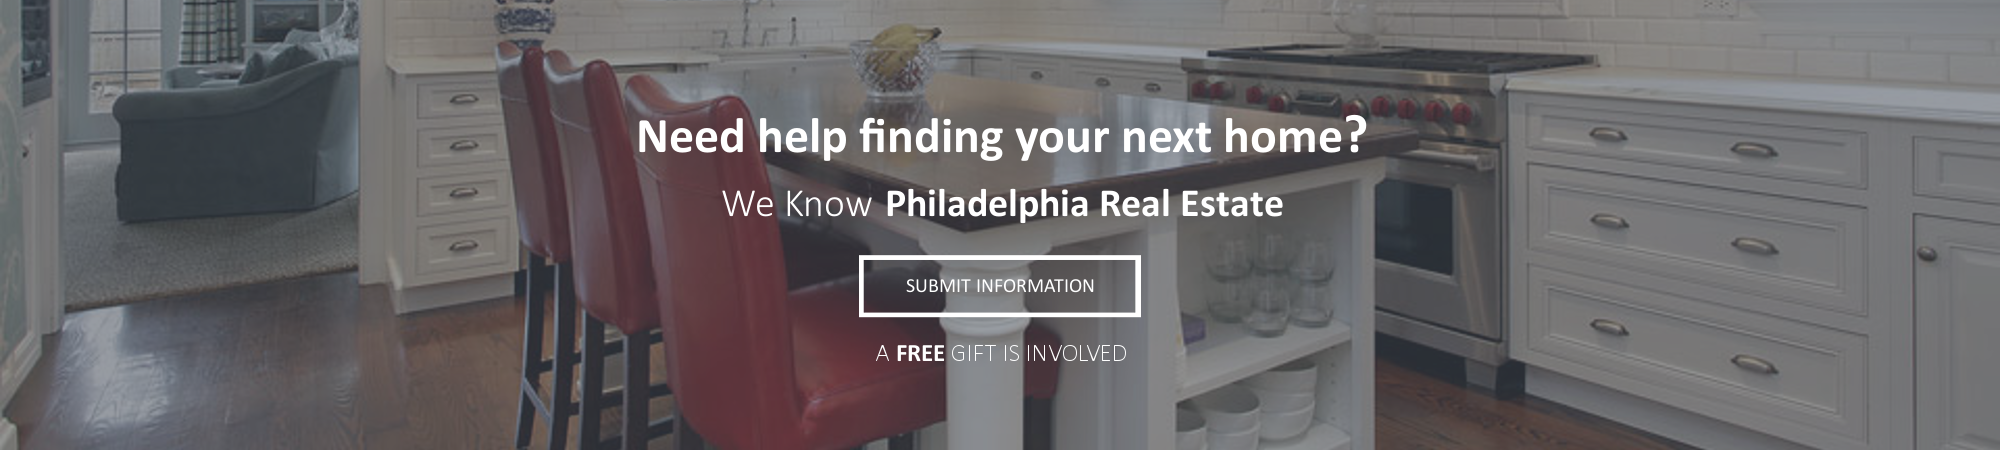 Atlantic States Realty - Philadelphia Real Estate